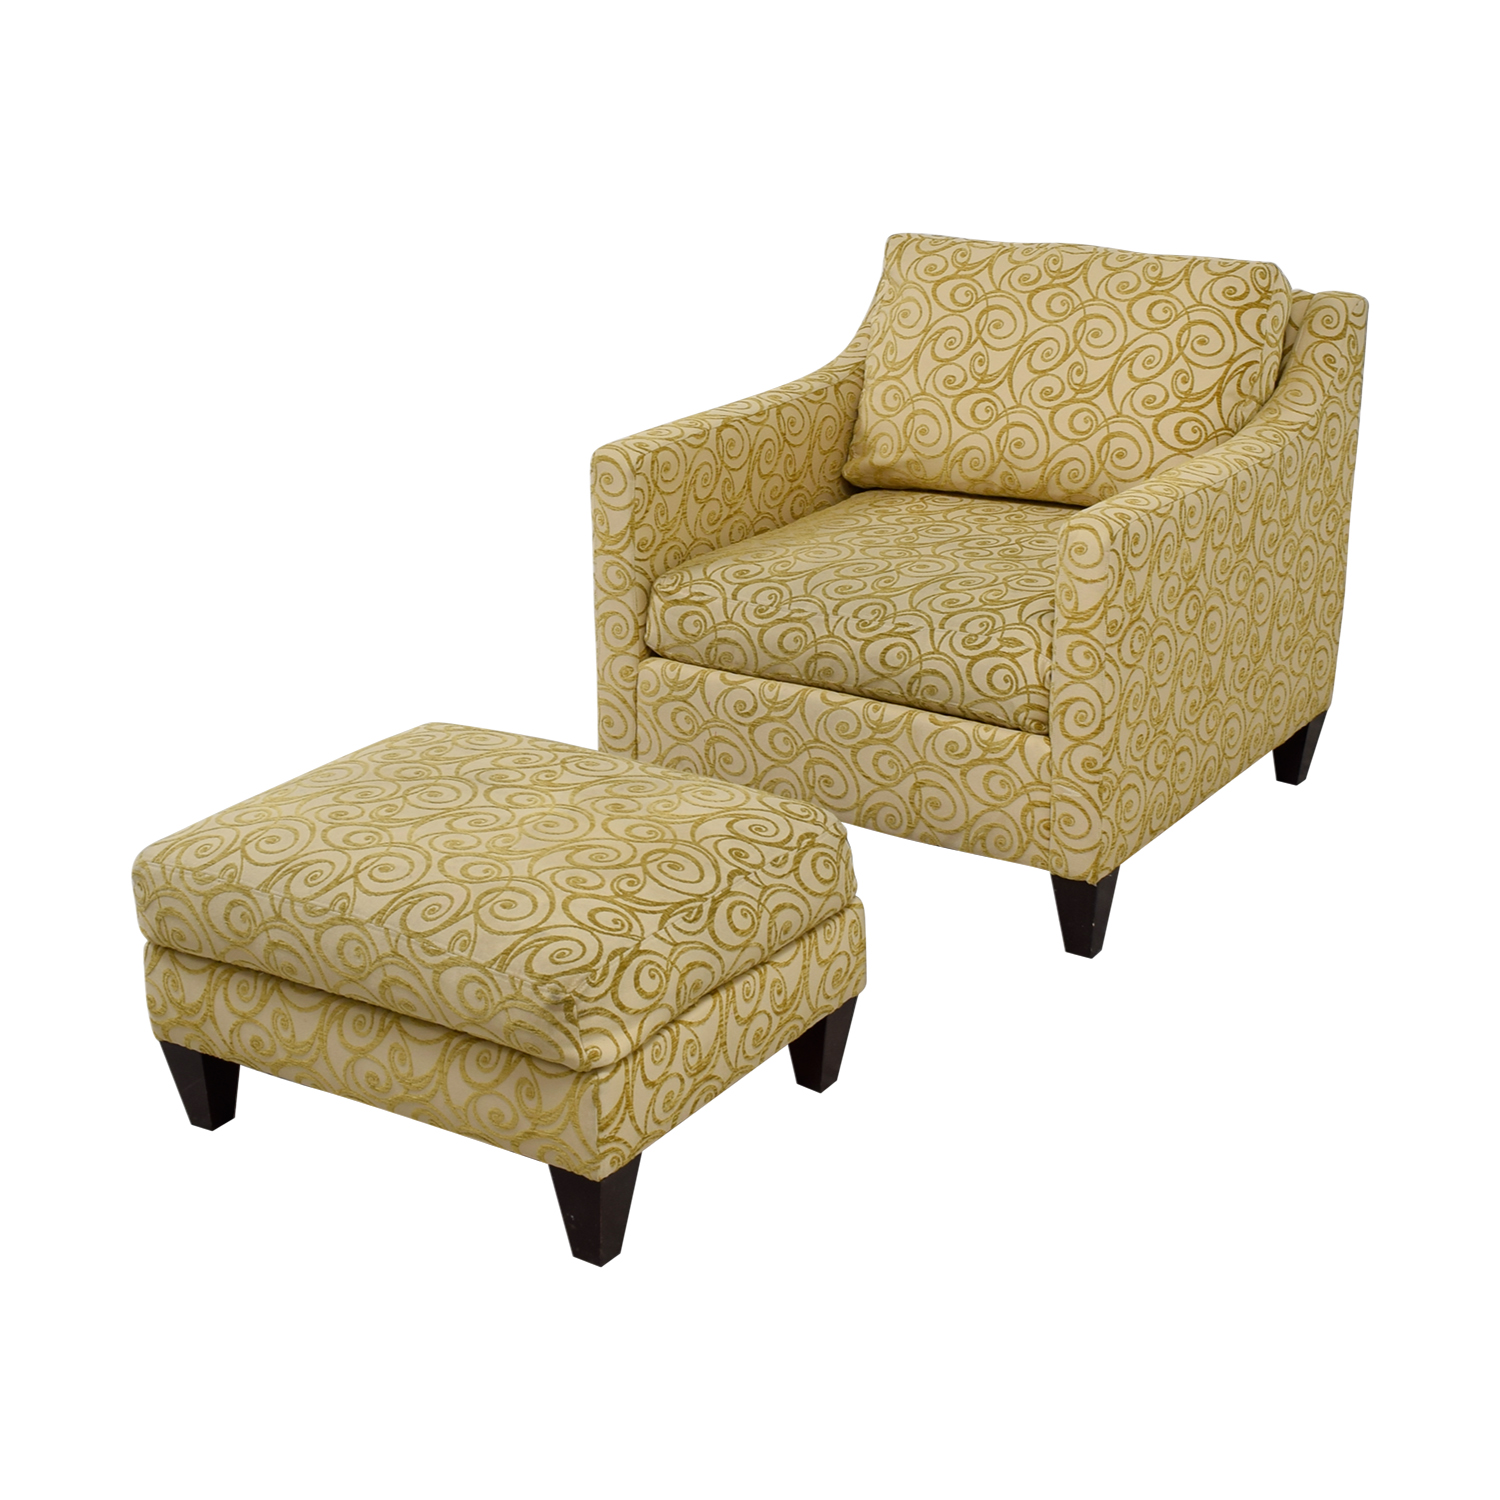 shop Ethan Allen Ethan Allen Beige and Gold Monterey Chair and Ottoman online